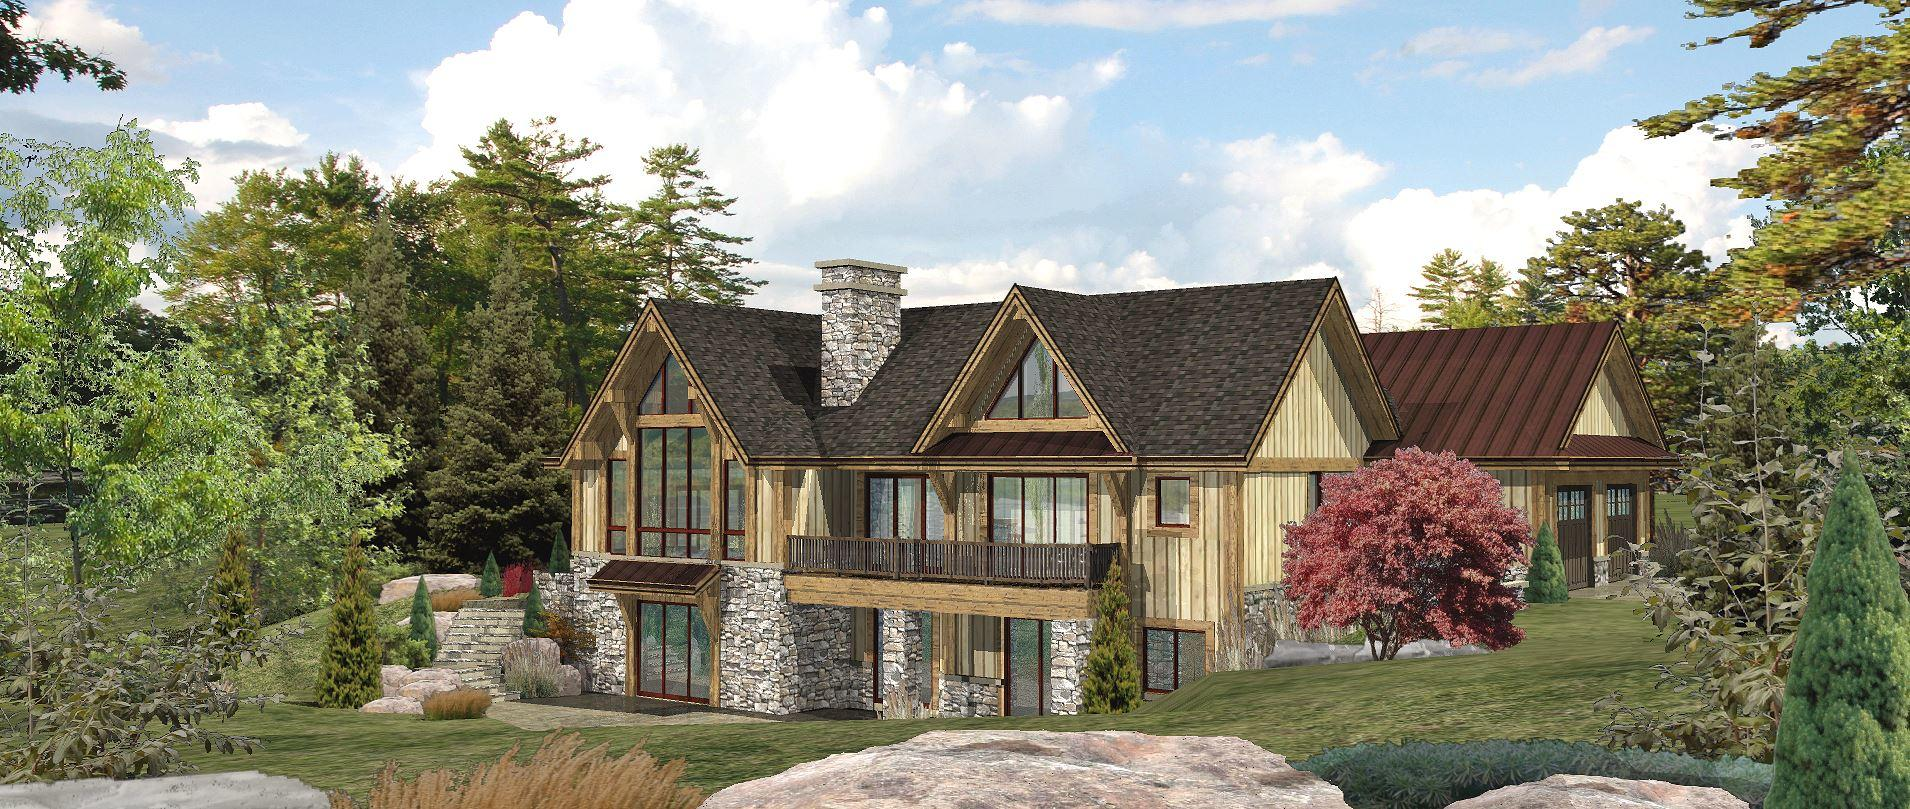 Lakefront - Rear Rendering by Wisconsin Log Homes 2